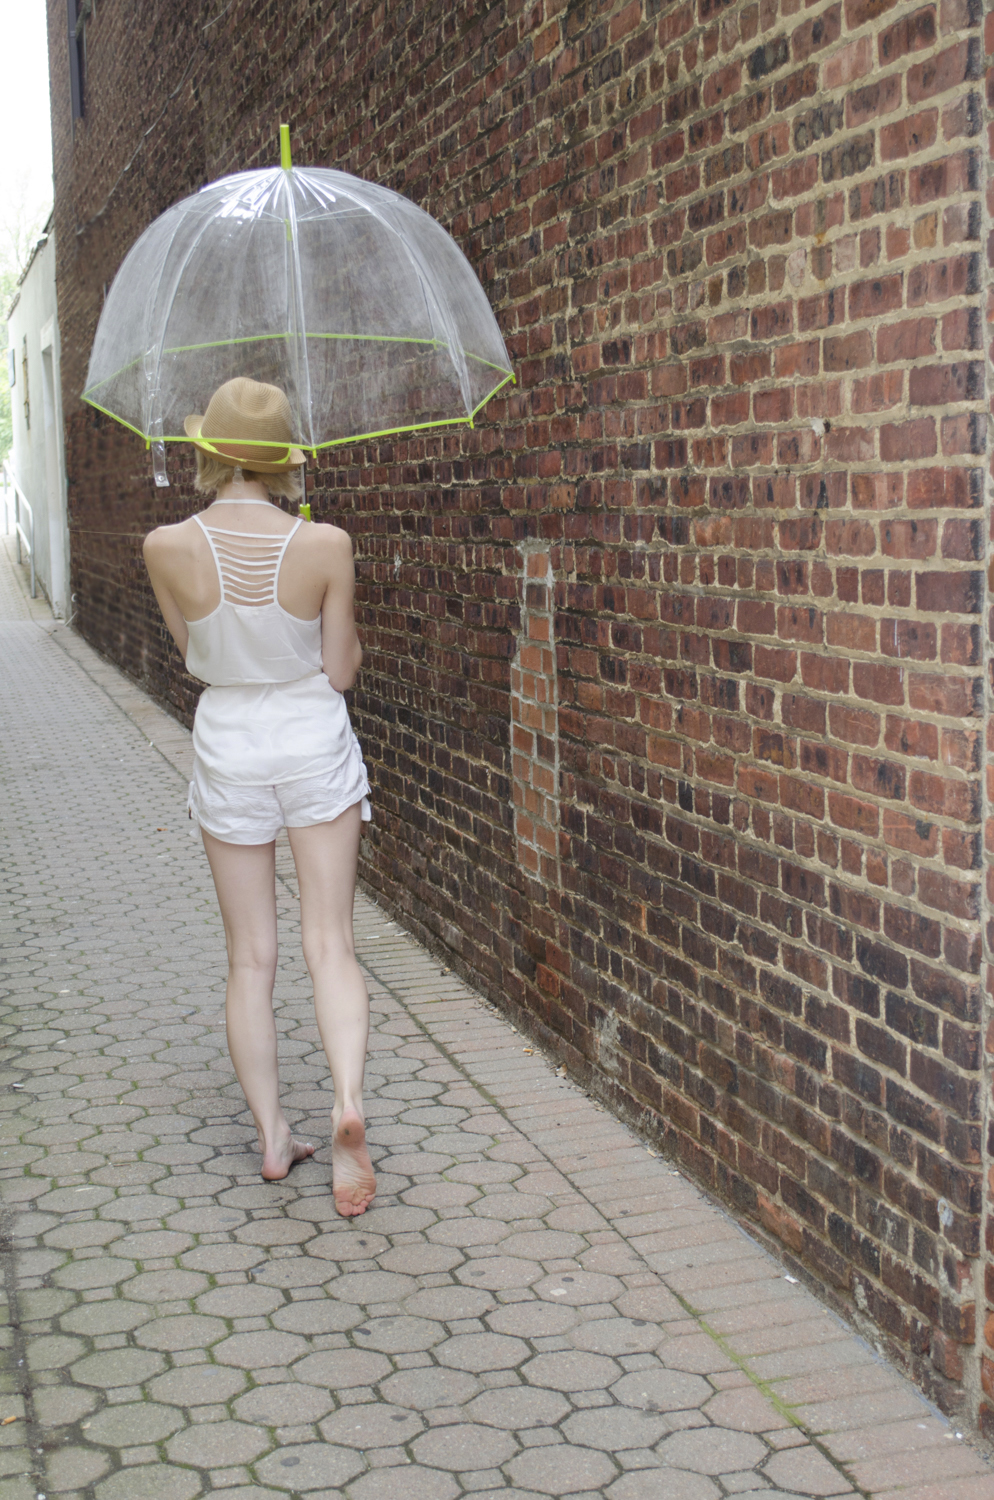 osp_photography_girl_umbrella.jpg